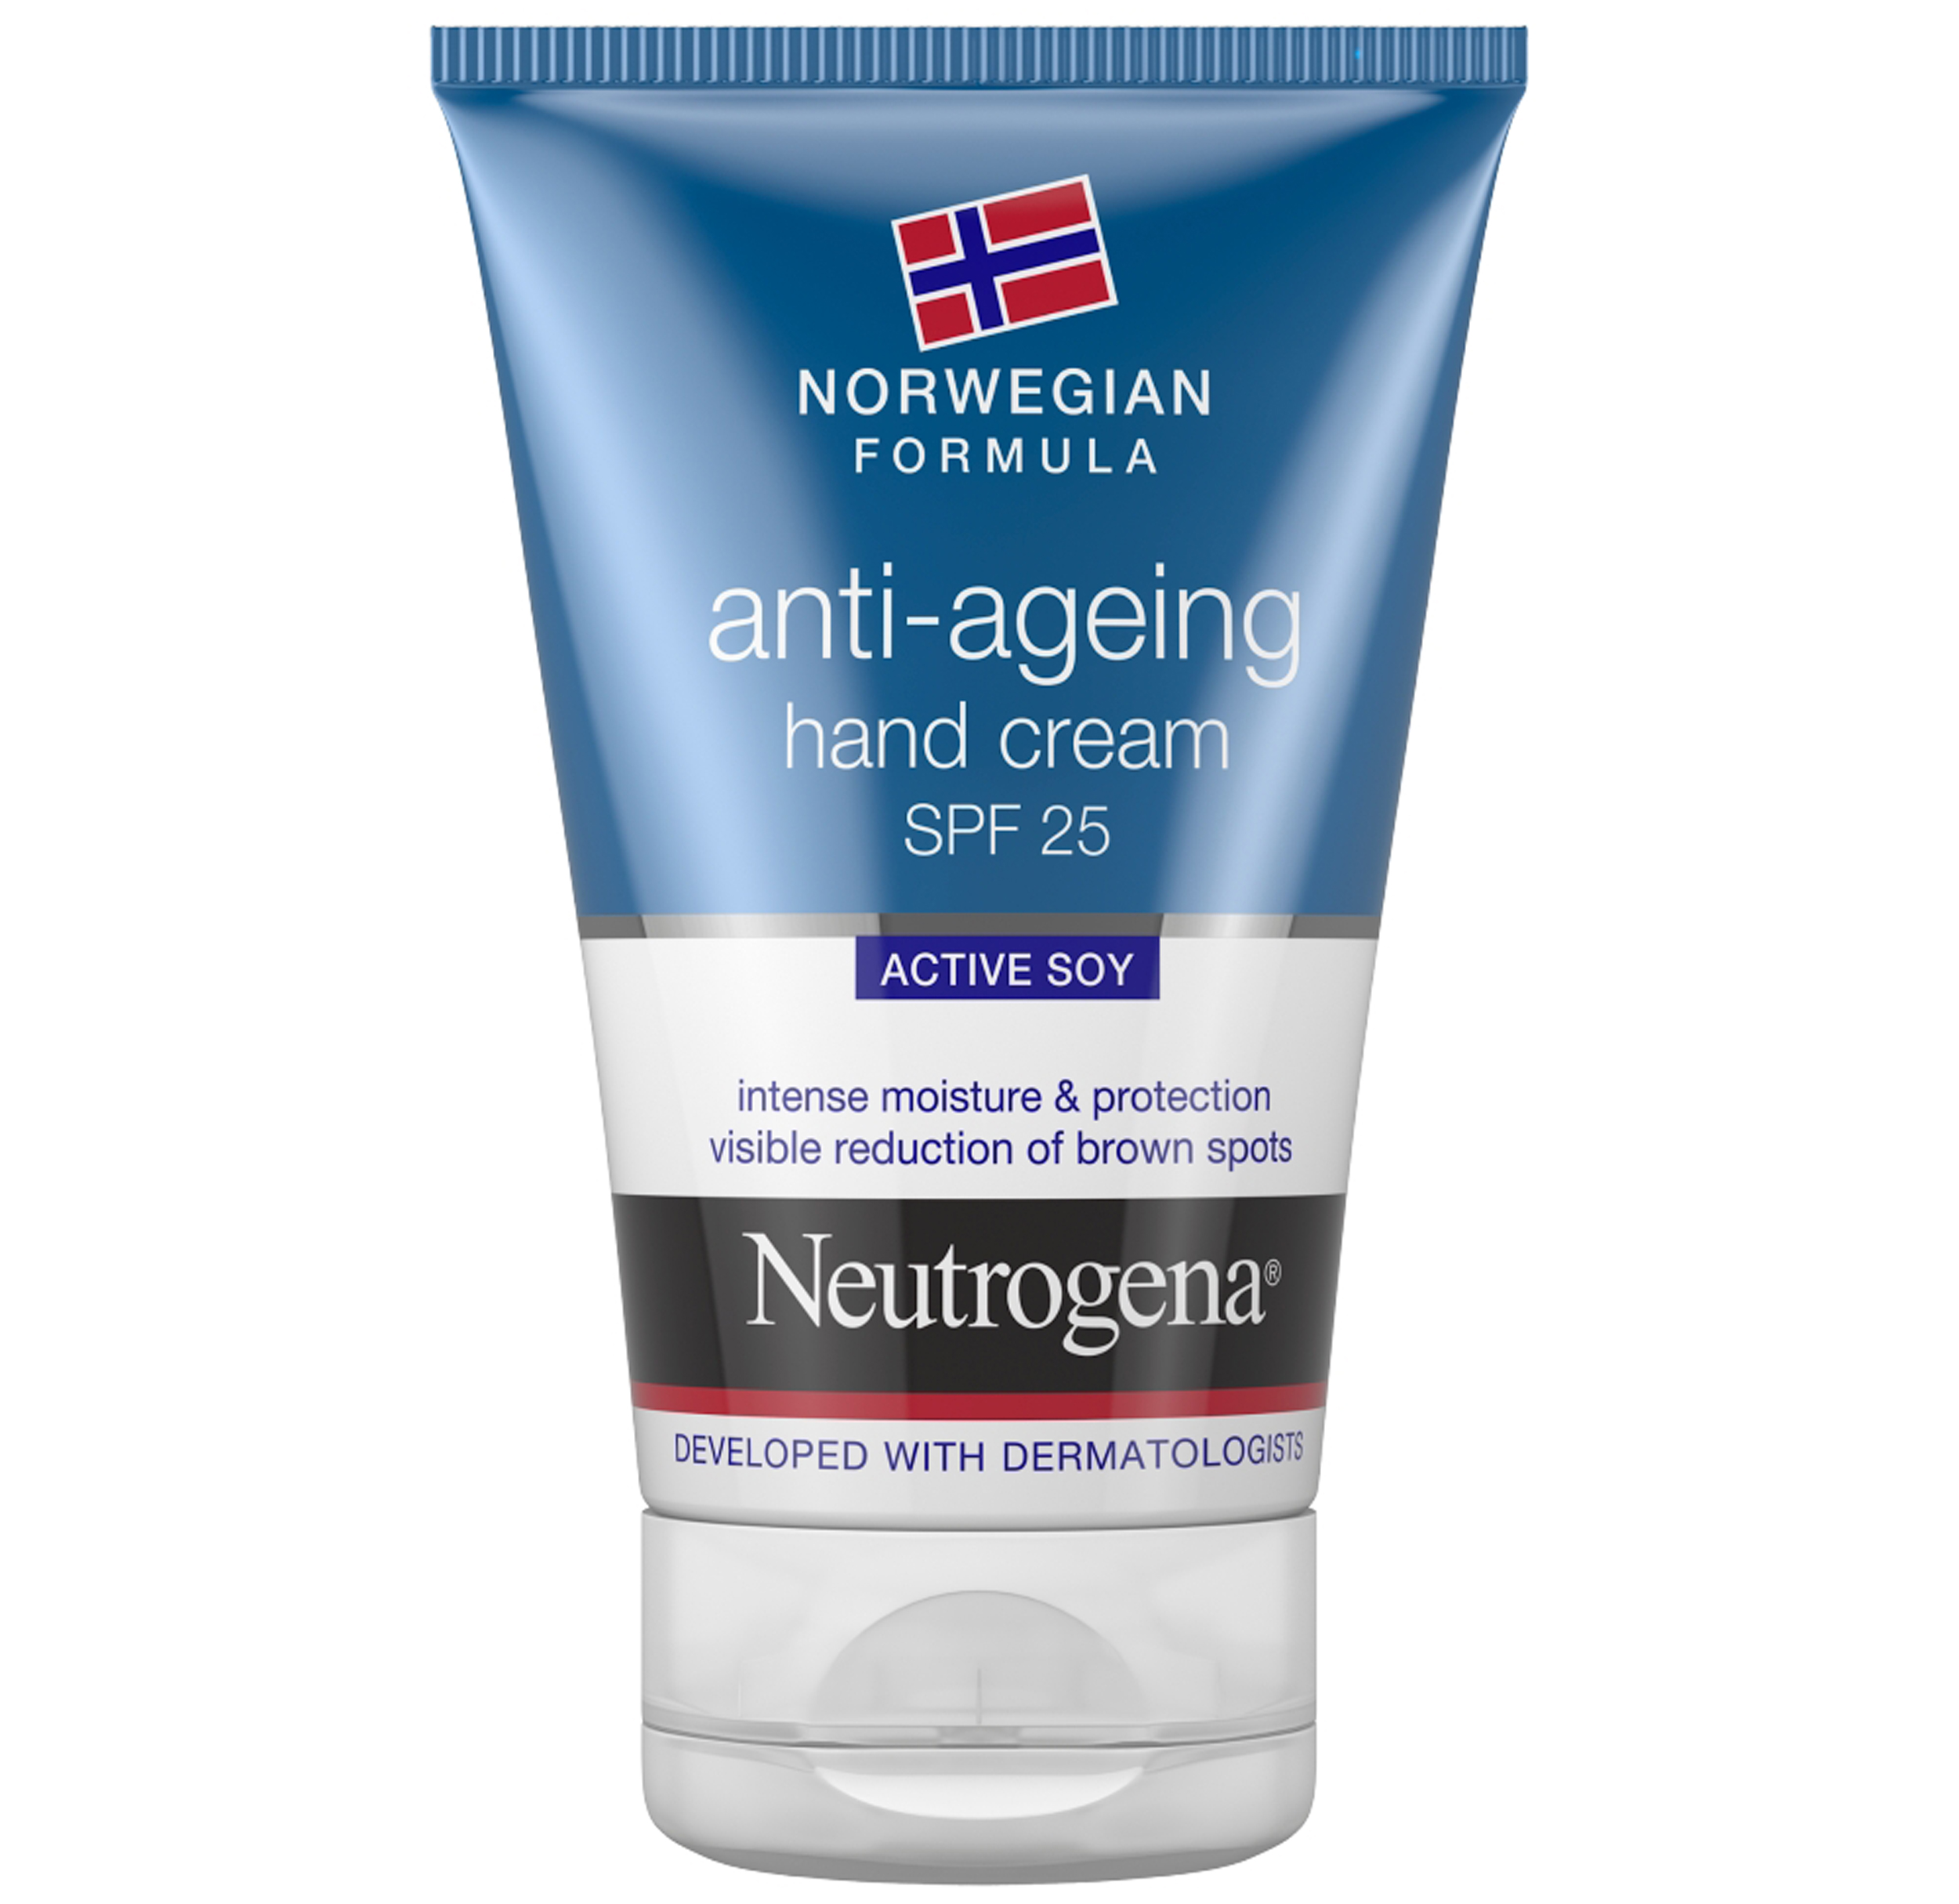 Neutrogena Norwegian Formula Anti-Ageing Hand Cream SPF25